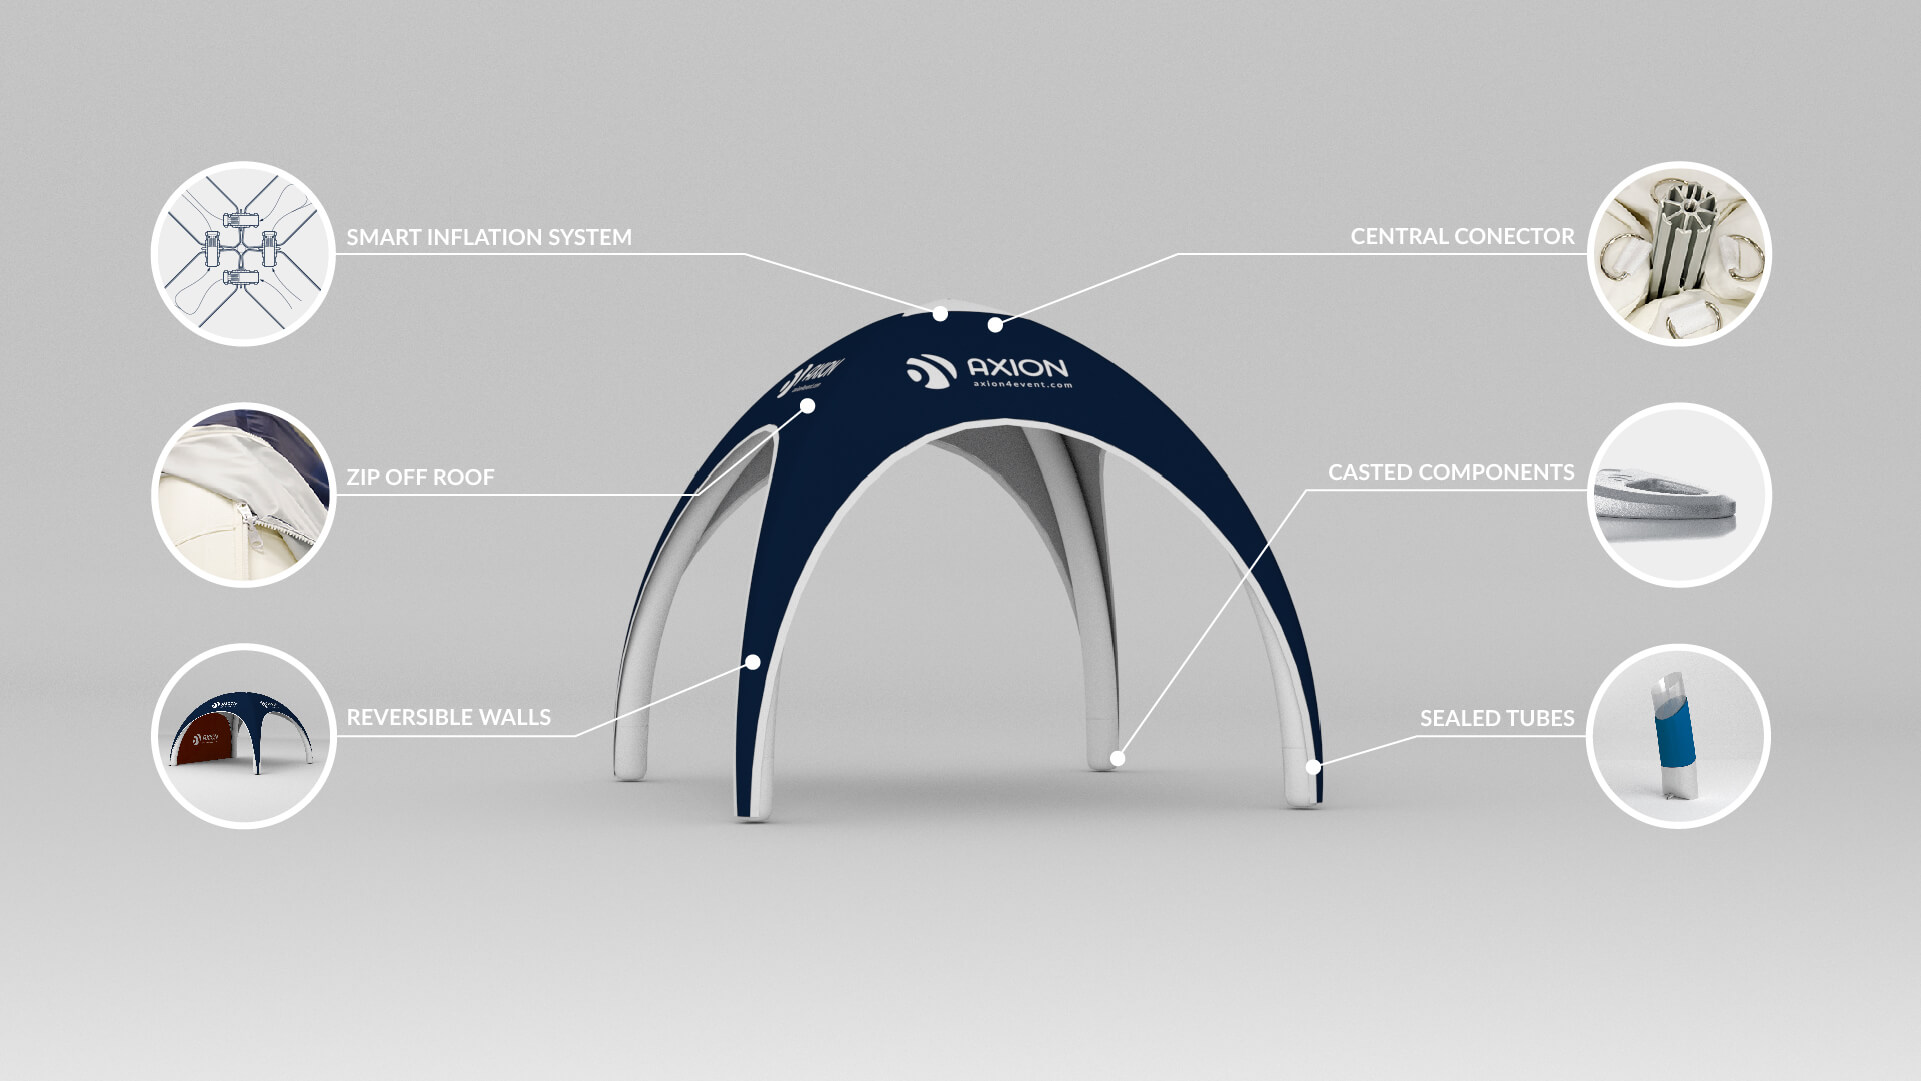 axion-easy-tent-feature